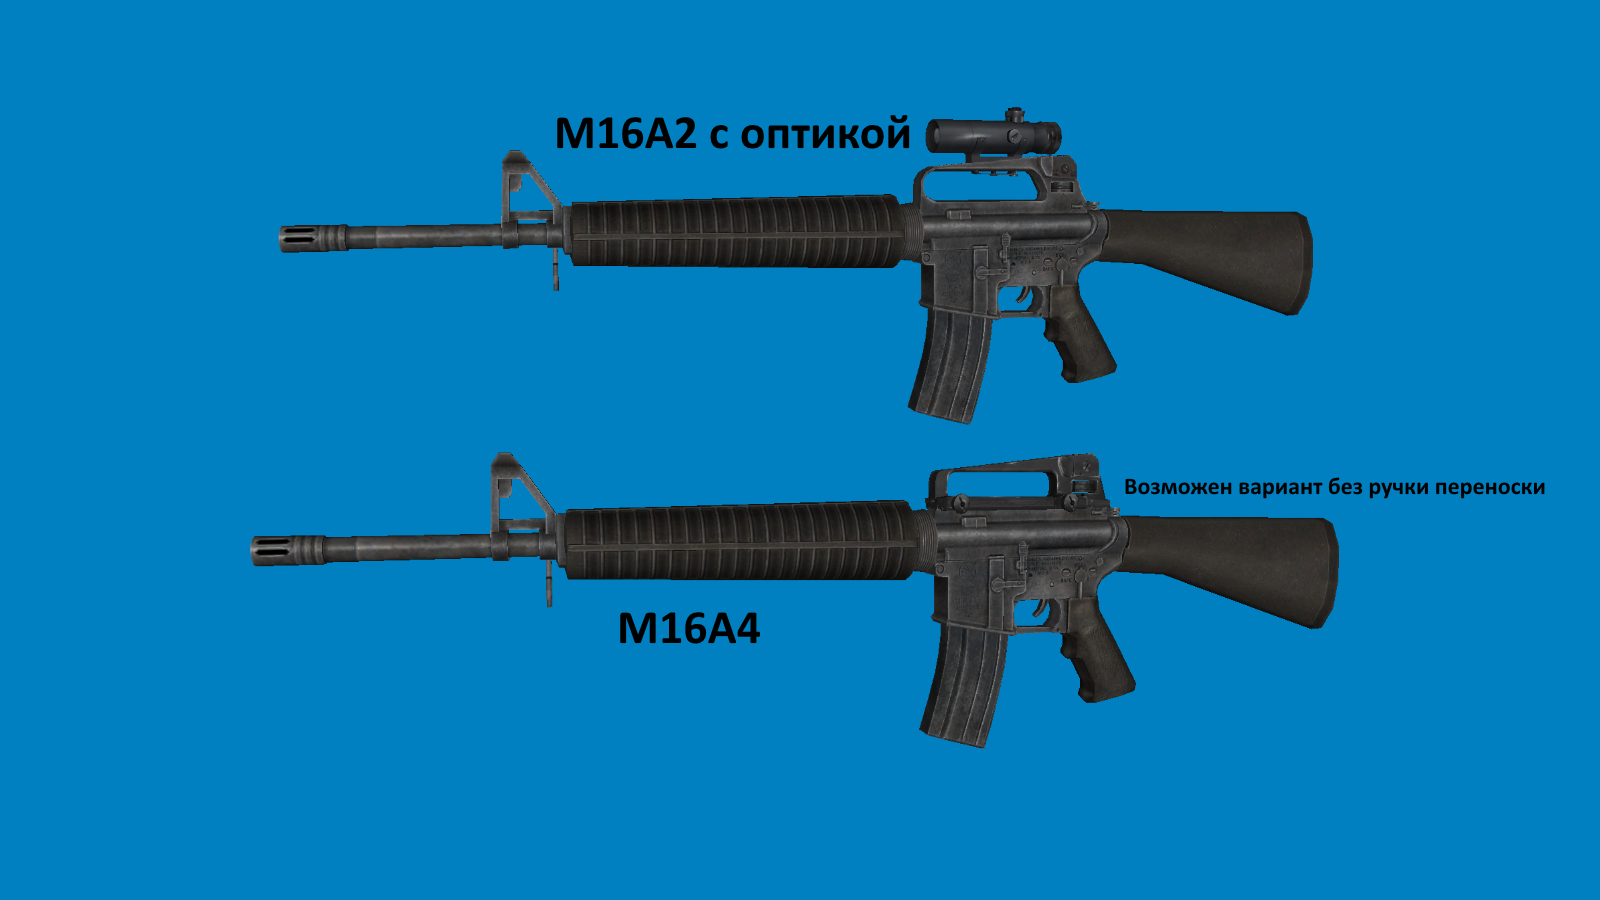 m16a2 and m16a4 image old good battlefield mod for battlefield 2